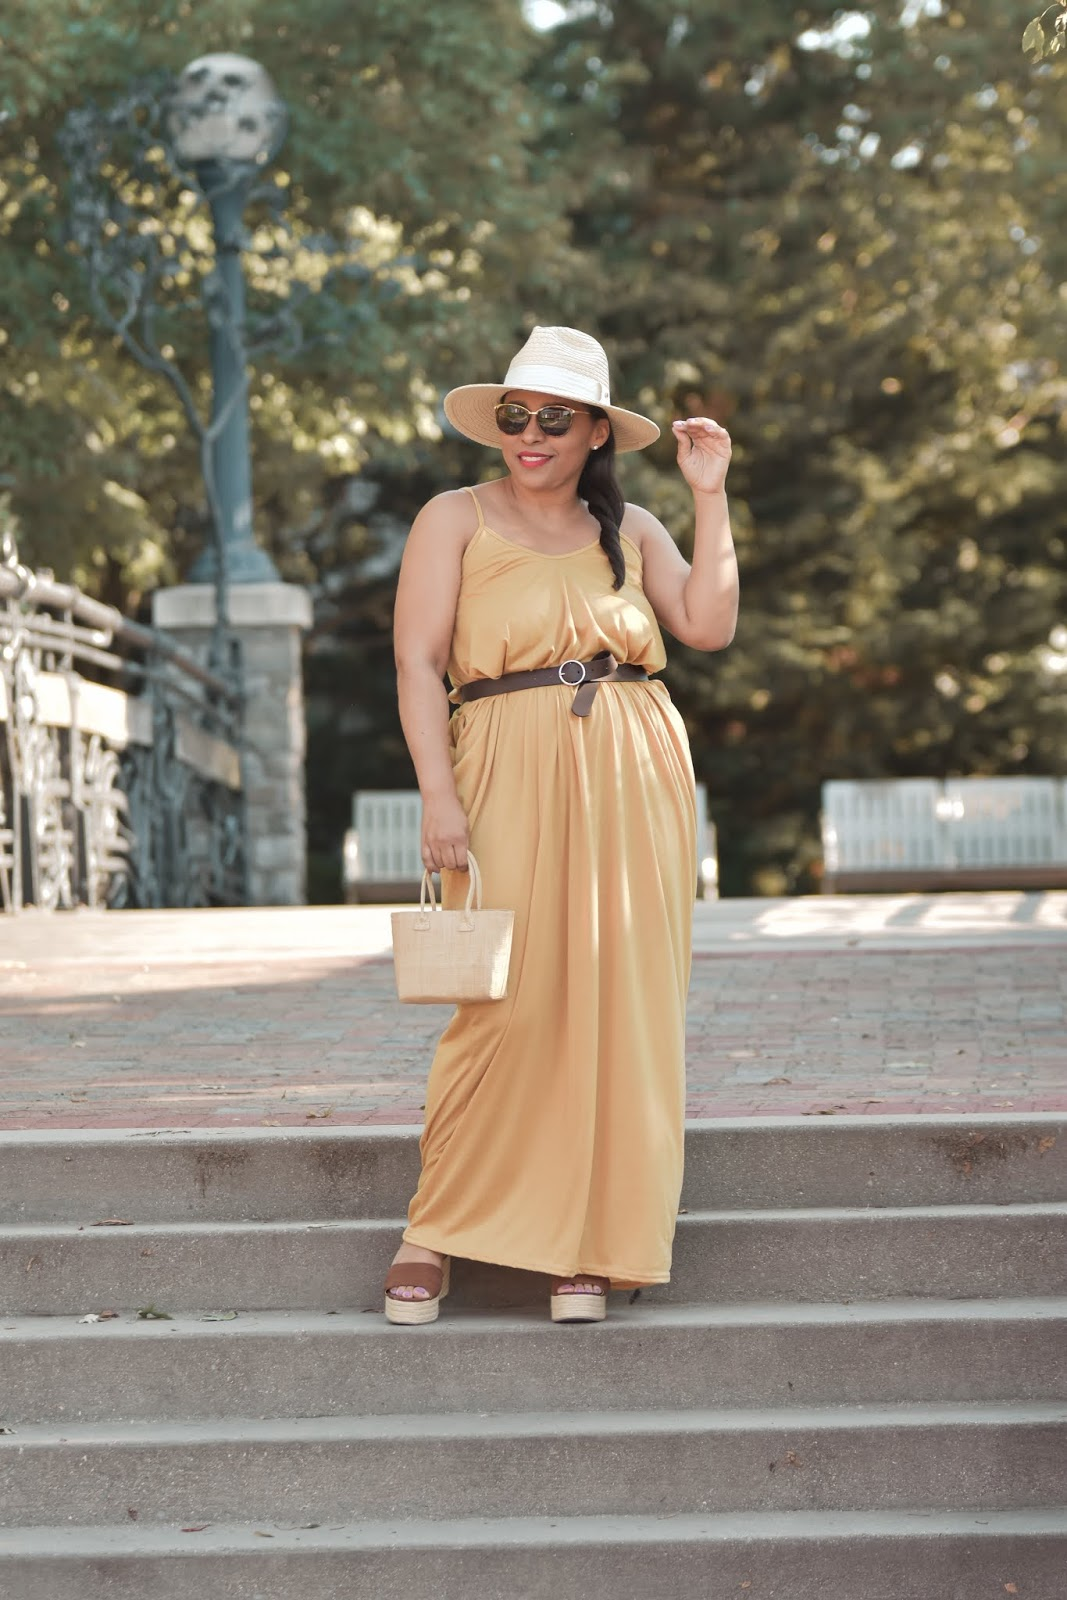 shein, shein reviews, pattys kloset, maxi dress outfit ideas, summer maxi dresses, how to style a maxi dress, maxi dress with pockets